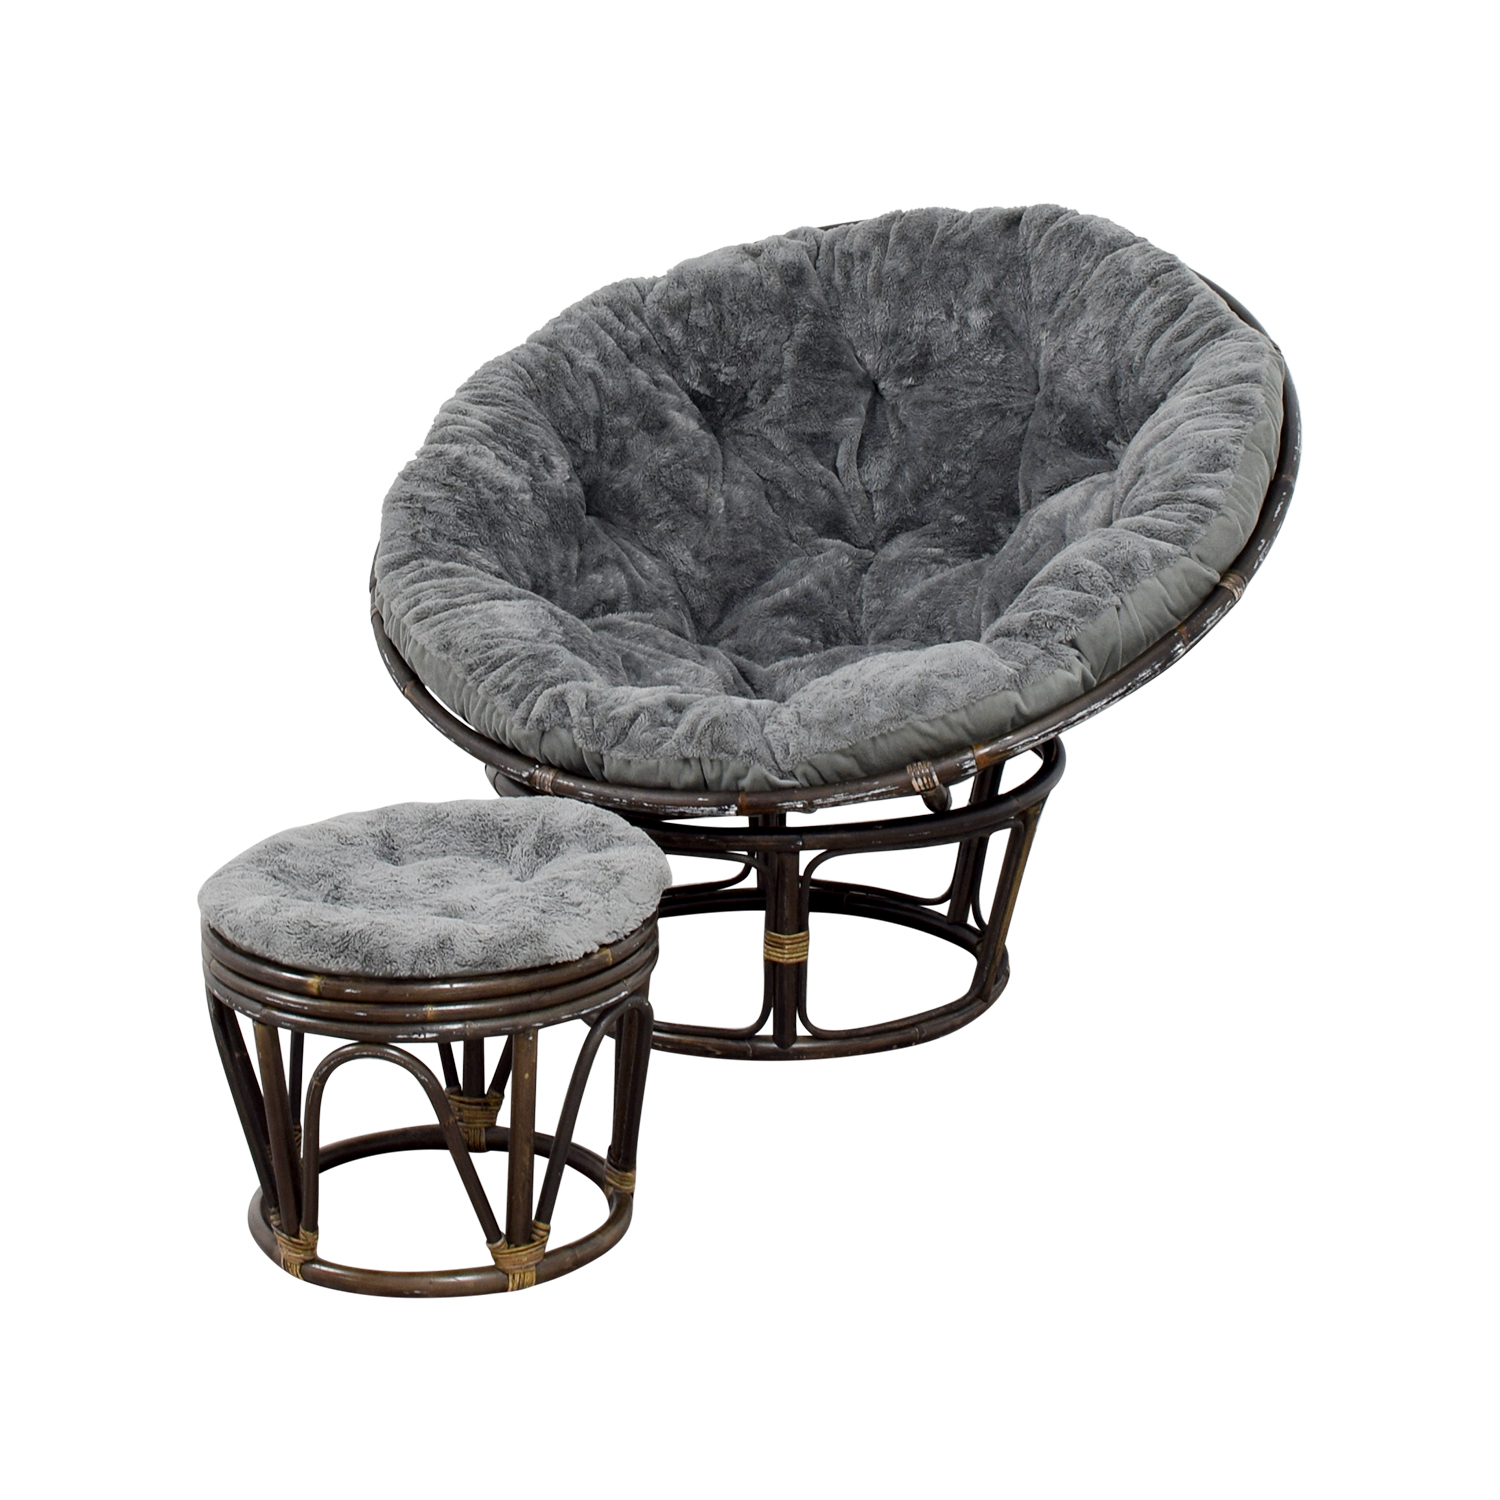 papasan chair pier one 86% OFF   Pier 1 Pier 1 Papasan Chair with Stool / Chairs papasan chair pier one